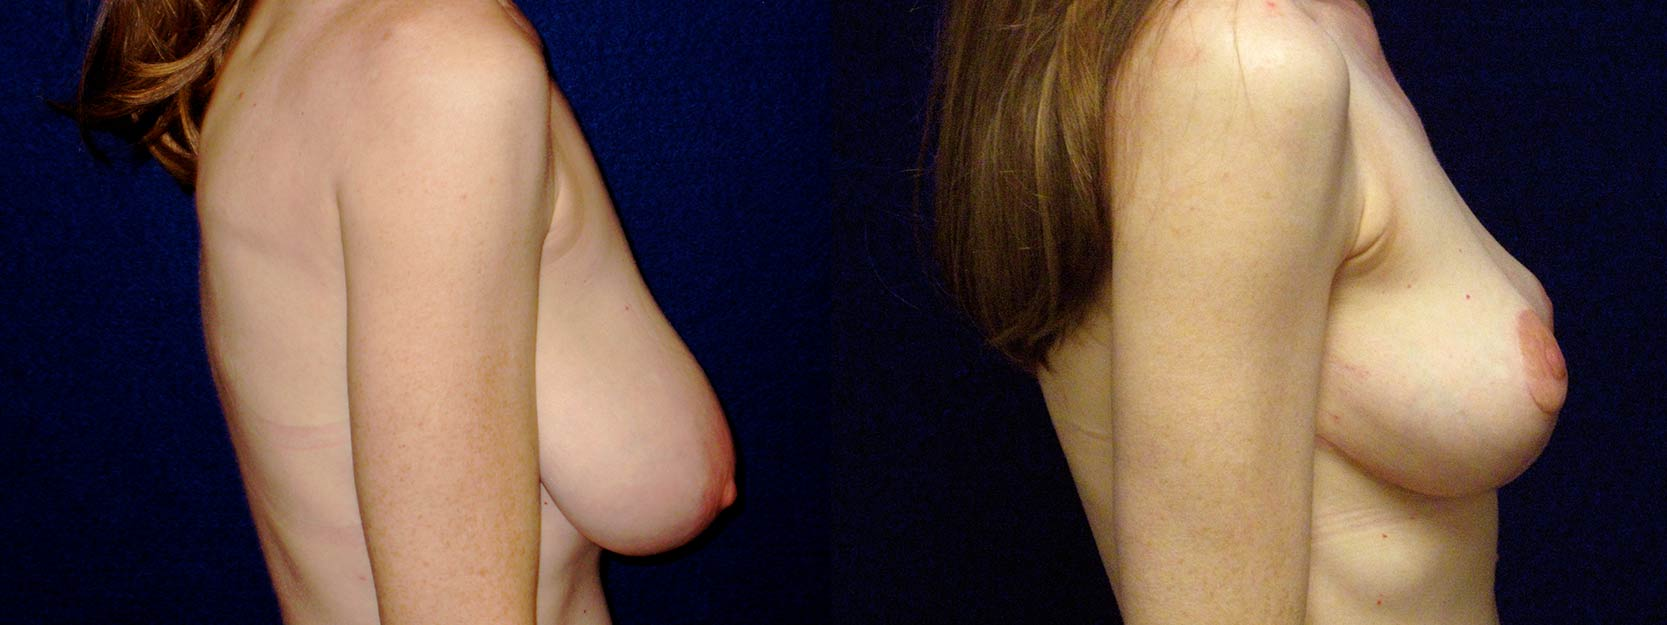 Left 3/4 View - Breast Reduction and Lift